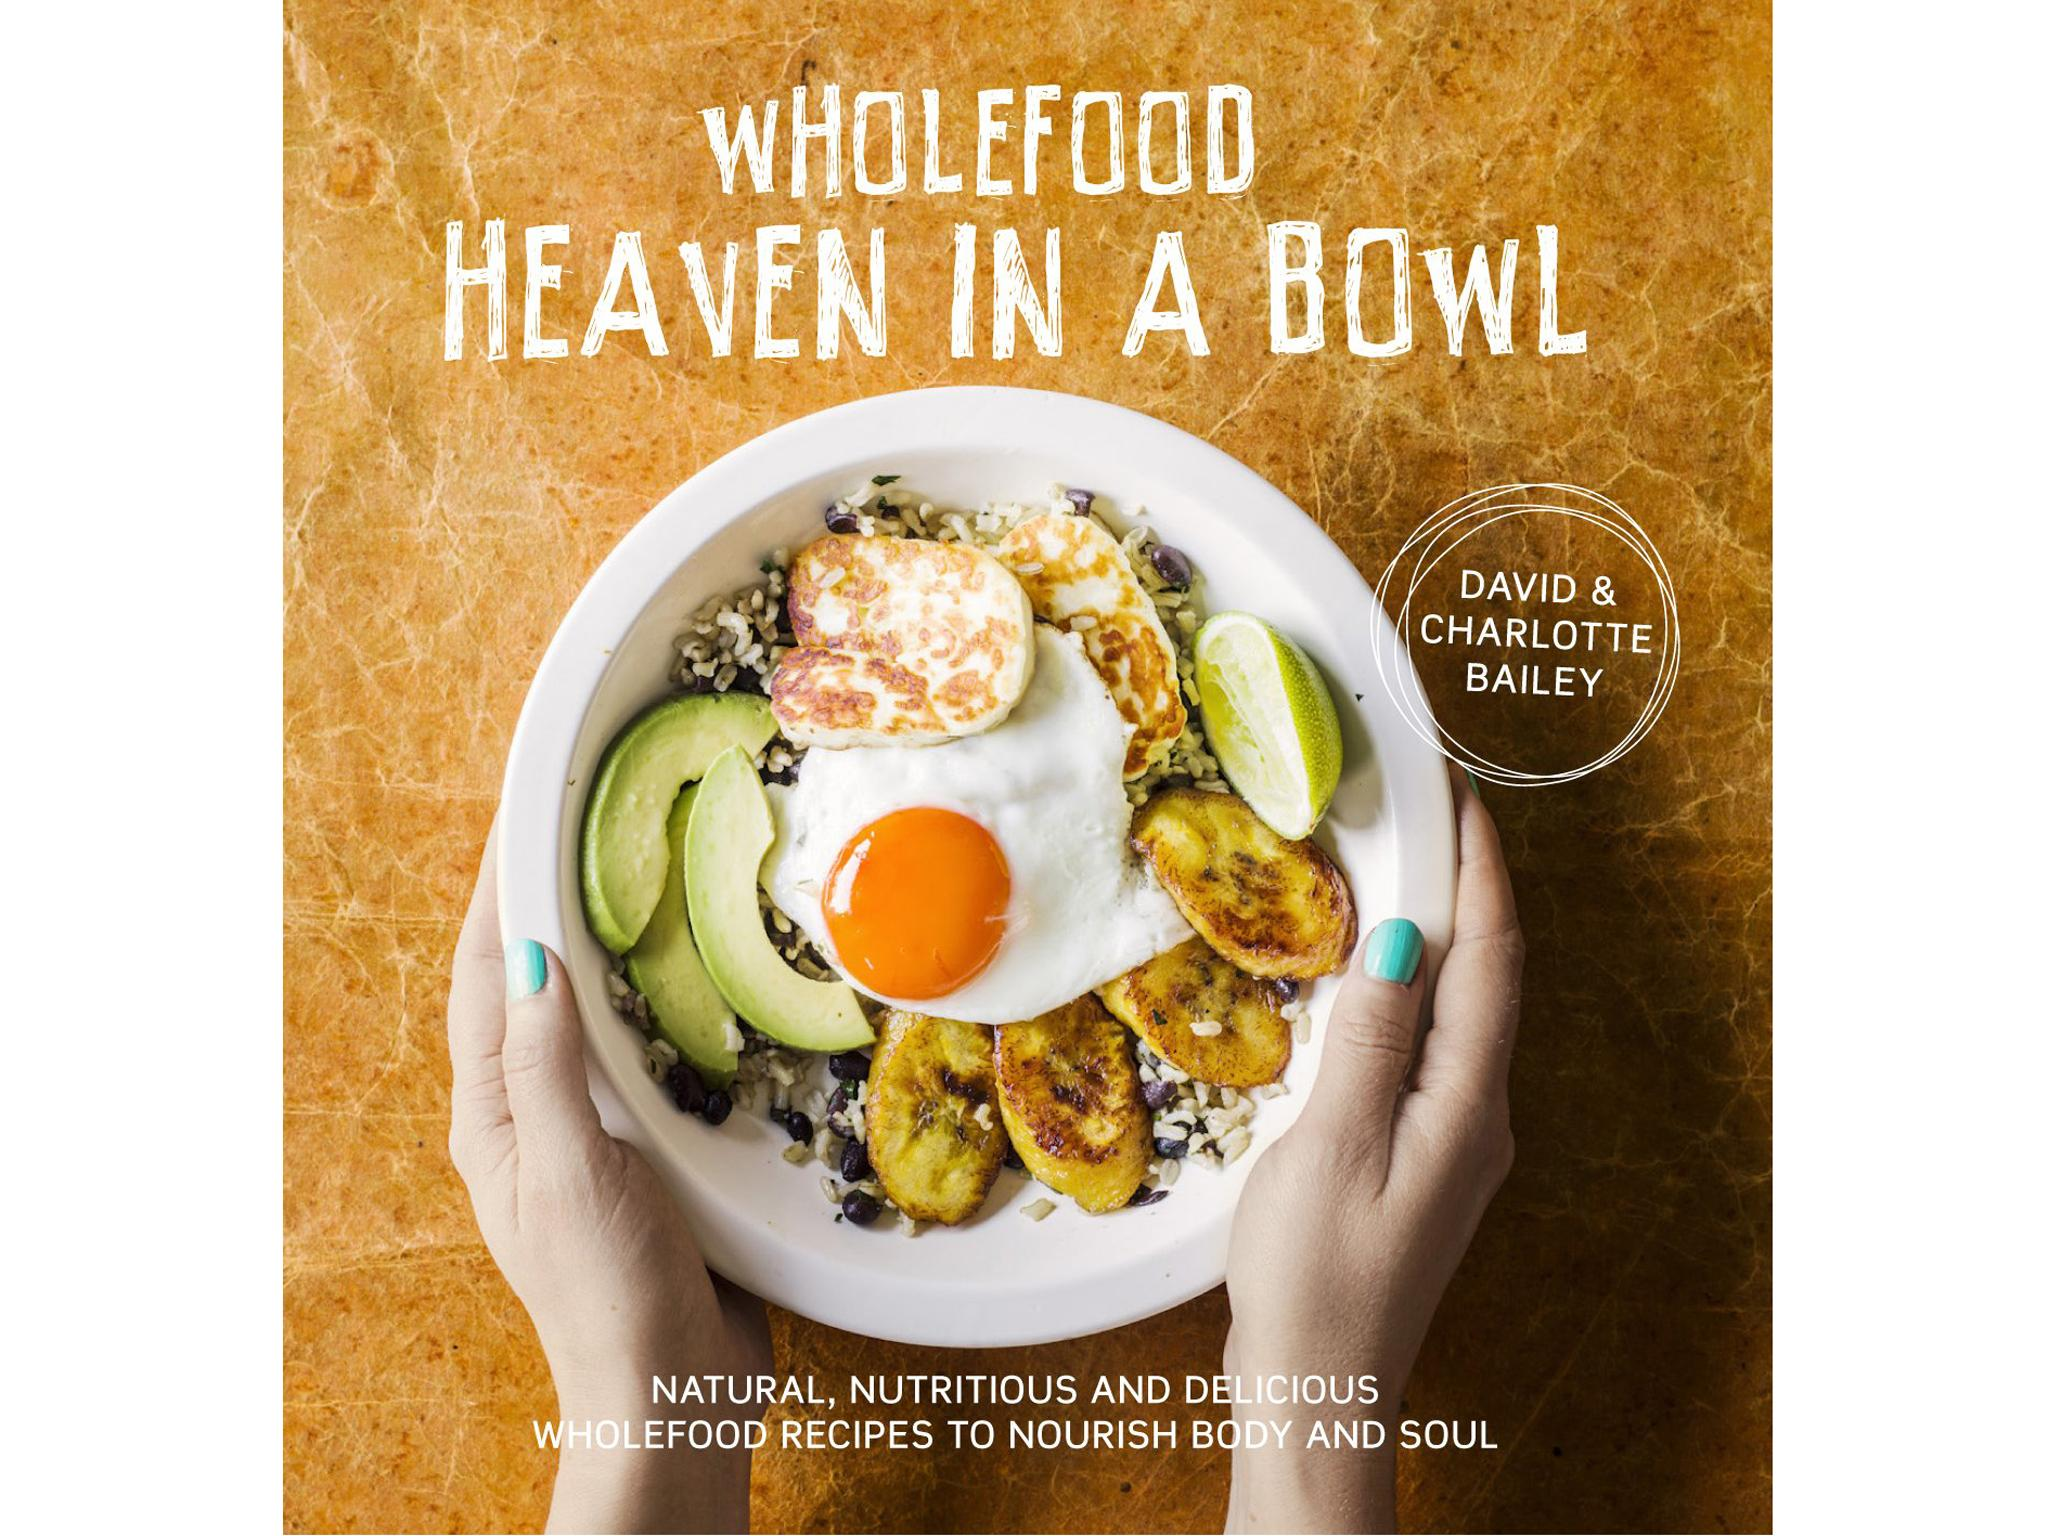 9 best vegan cookbooks the independent wholefood heaven in a bowl by david and charlotte bailey 1699 pavilion books forumfinder Gallery